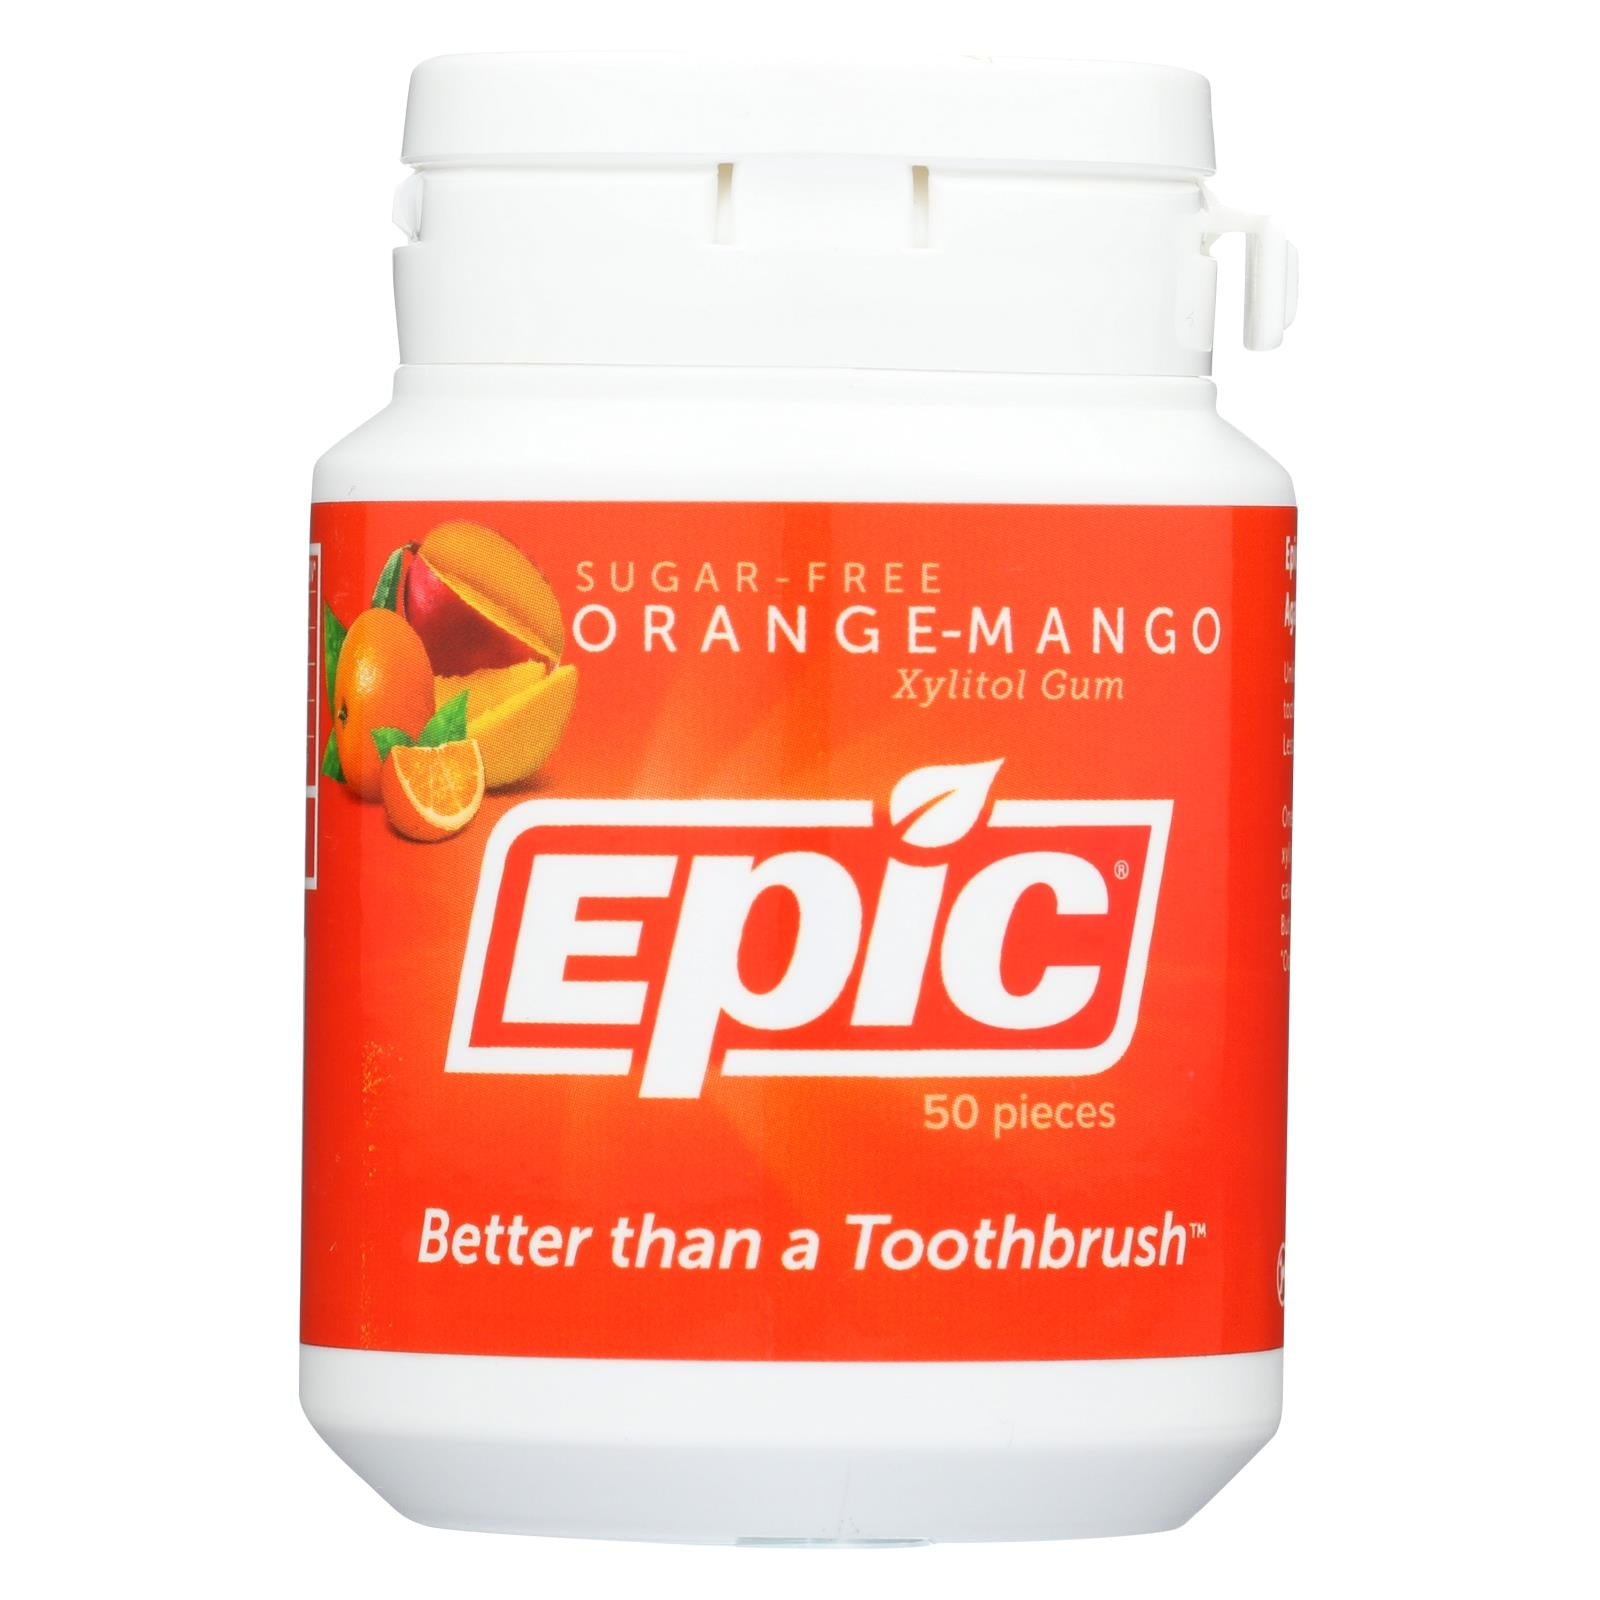 Buy Epic Dental - Gum Xylitol Orange-Mango - 50 CT - Candy and Chewing Gum from Veroeco.com